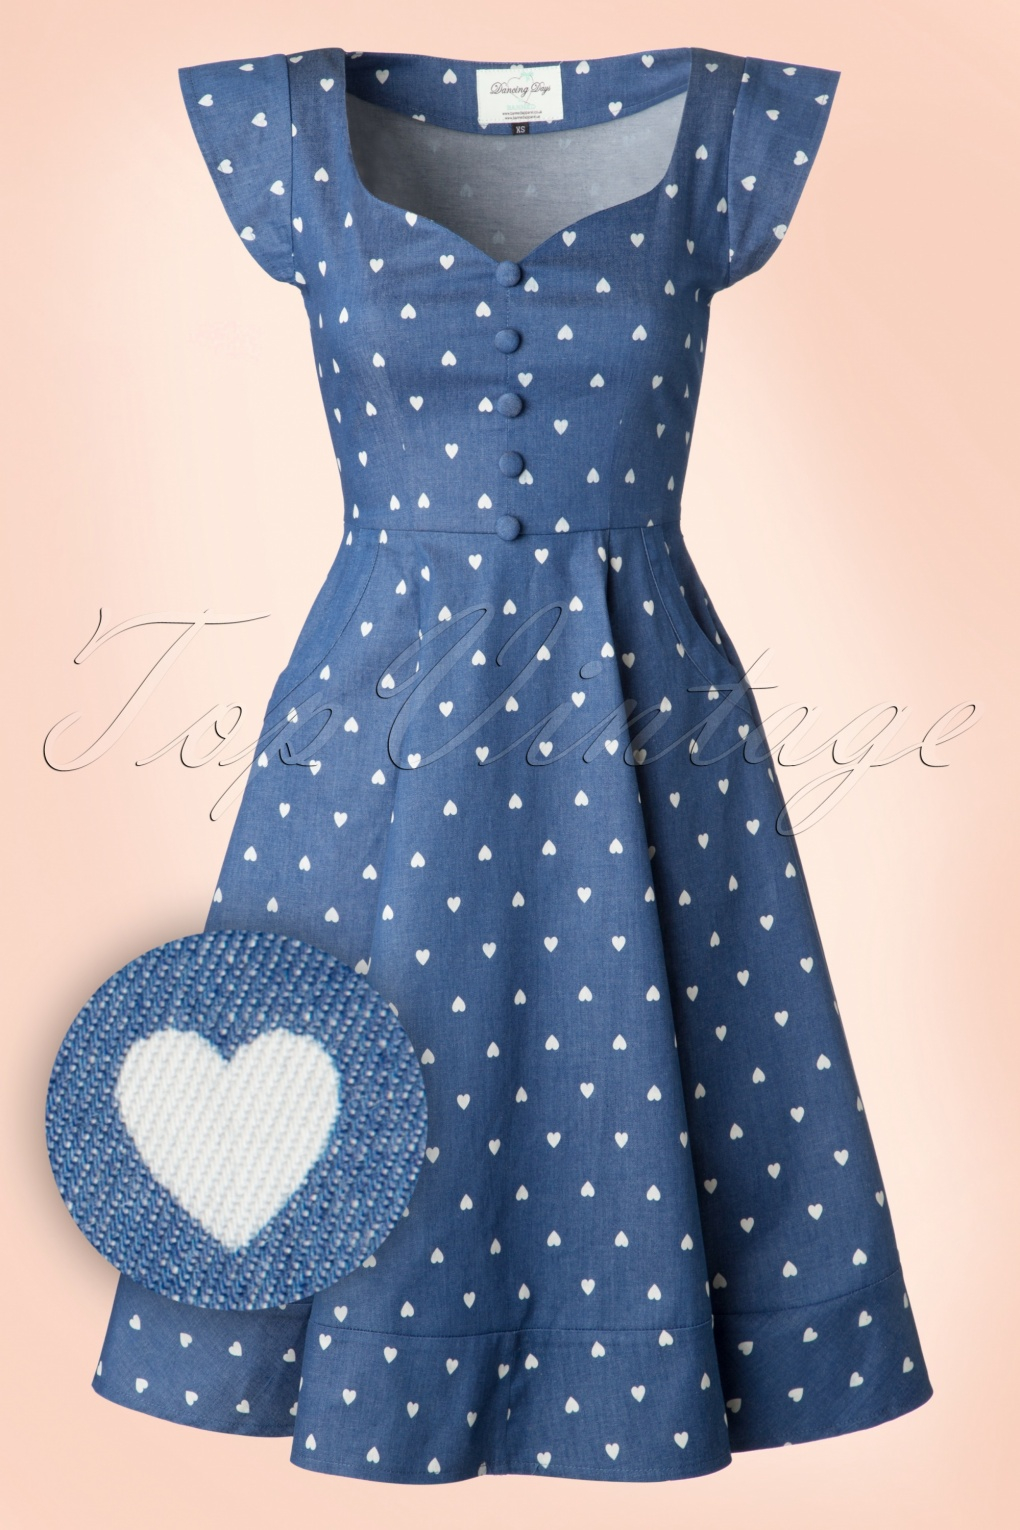 50s Dresses, Pinup Dresses, Swing Dresses 50s Judy Hearts Swing Dress in Denim £51.48 AT vintagedancer.com